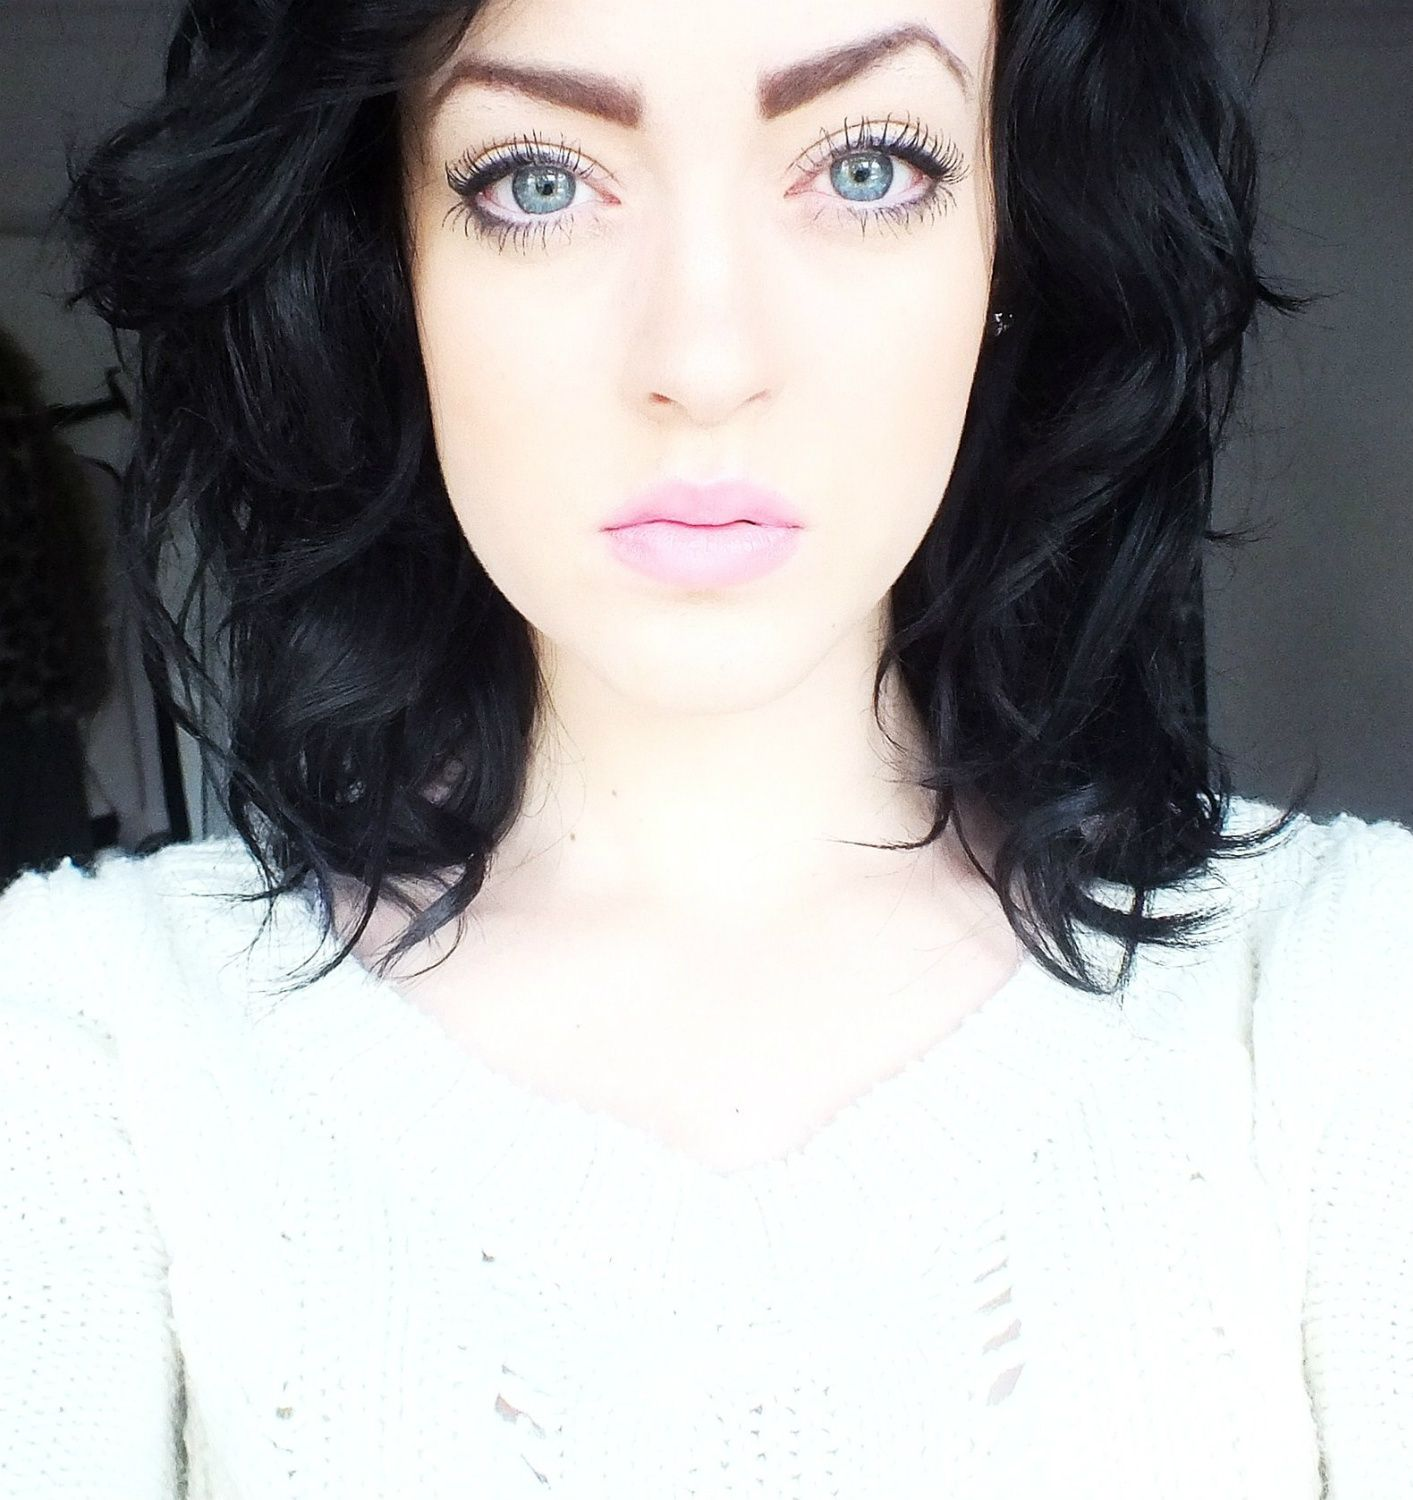 dark hair pale skin - cool pink lips | hair pale skin, dark